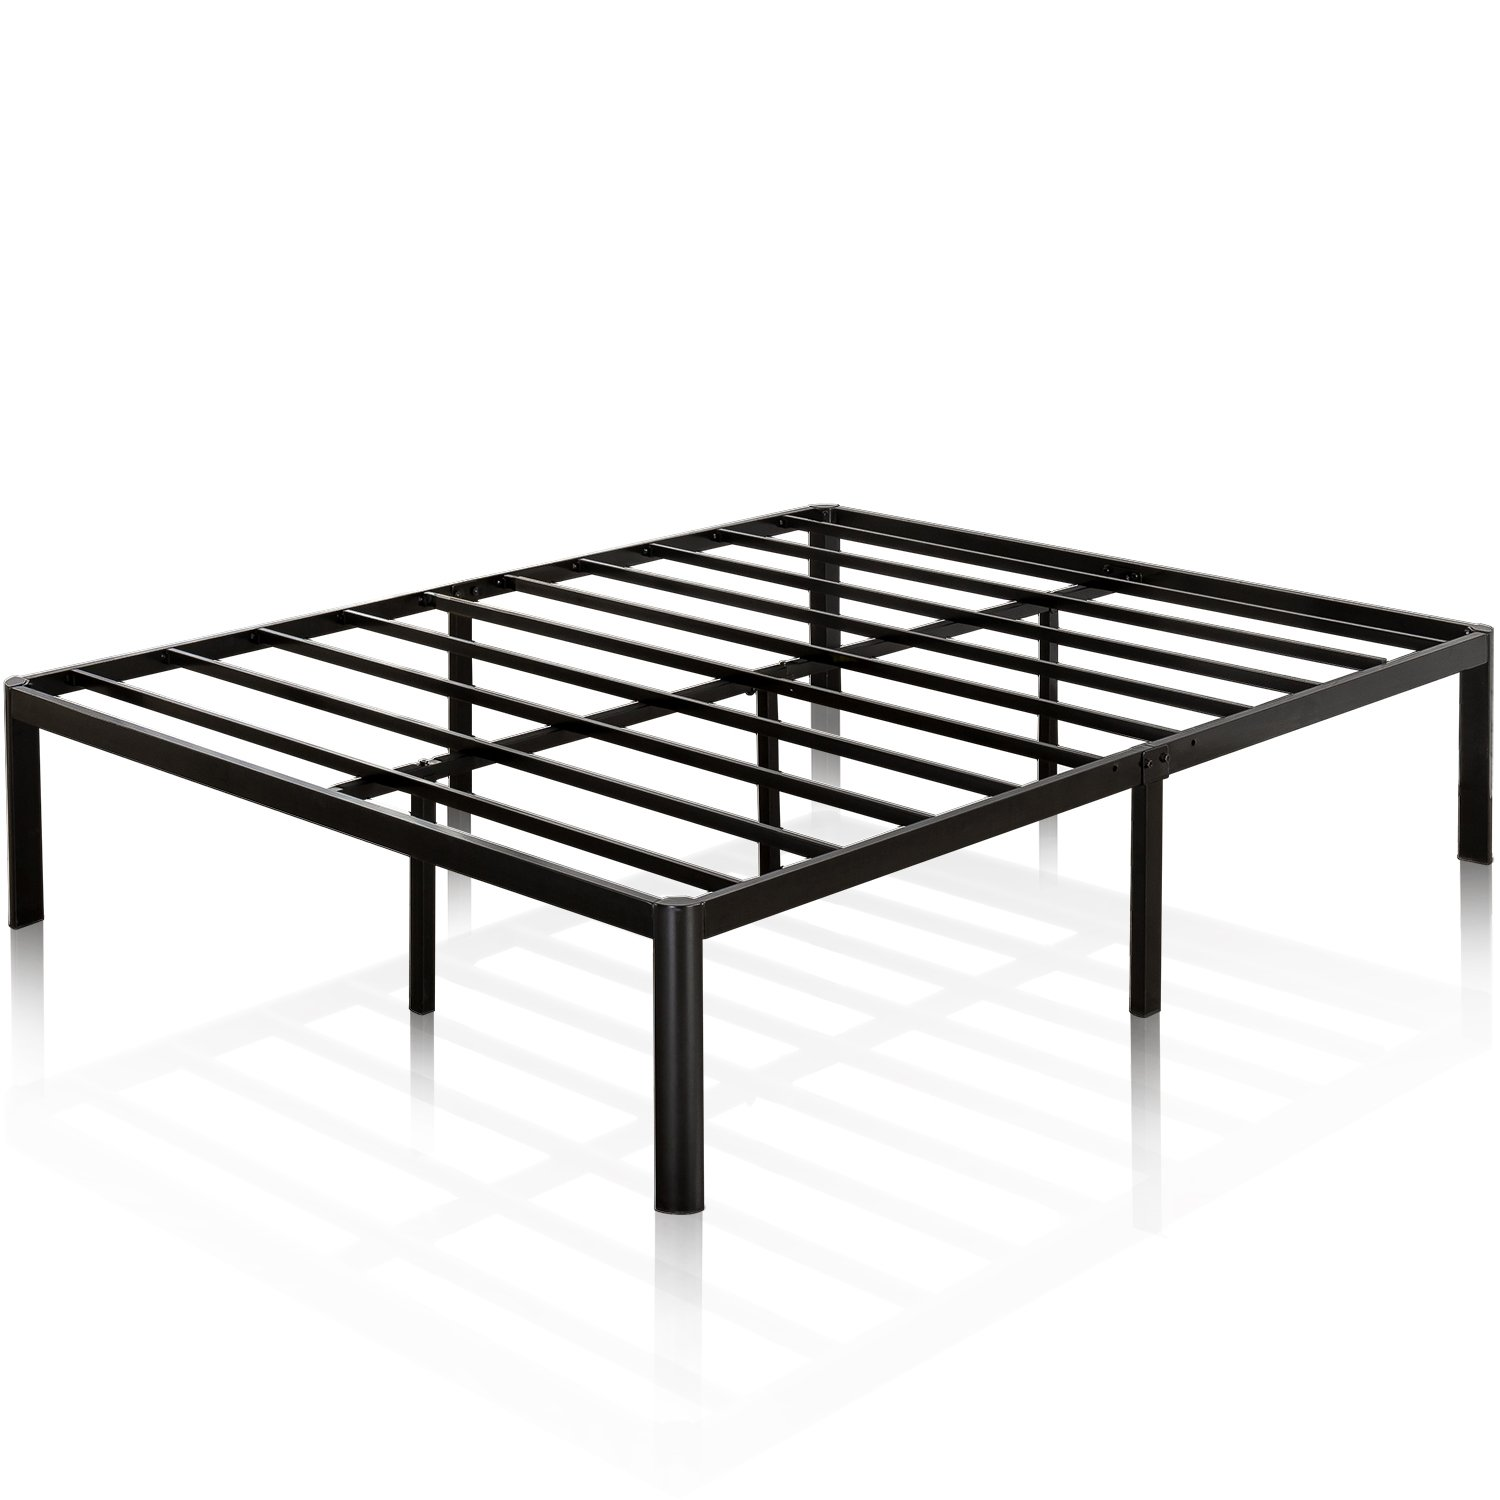 Zinus Van 16 Inch Metal Platform Bed Frame with Steel Slat Support / Mattress Foundation, Queen by Zinus